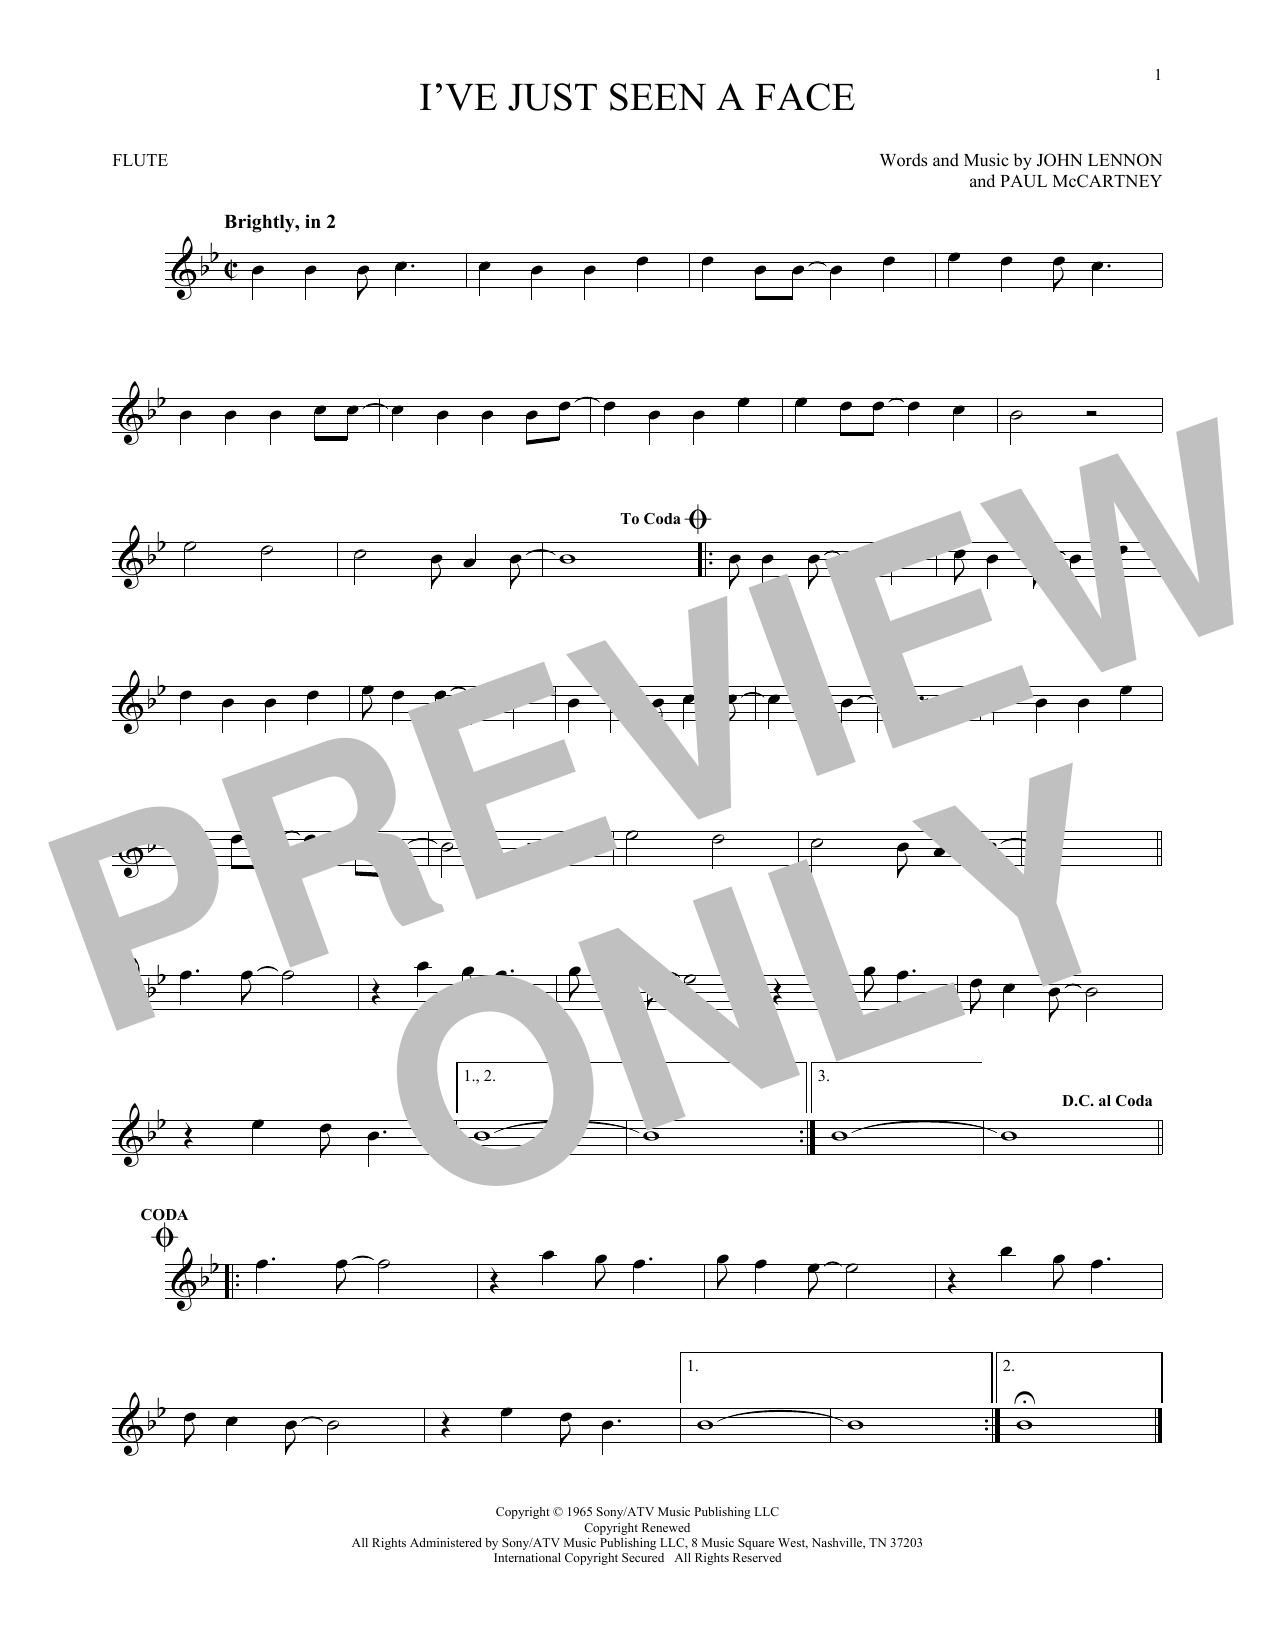 The Beatles Ive Just Seen A Face Sheet Music Notes Chords